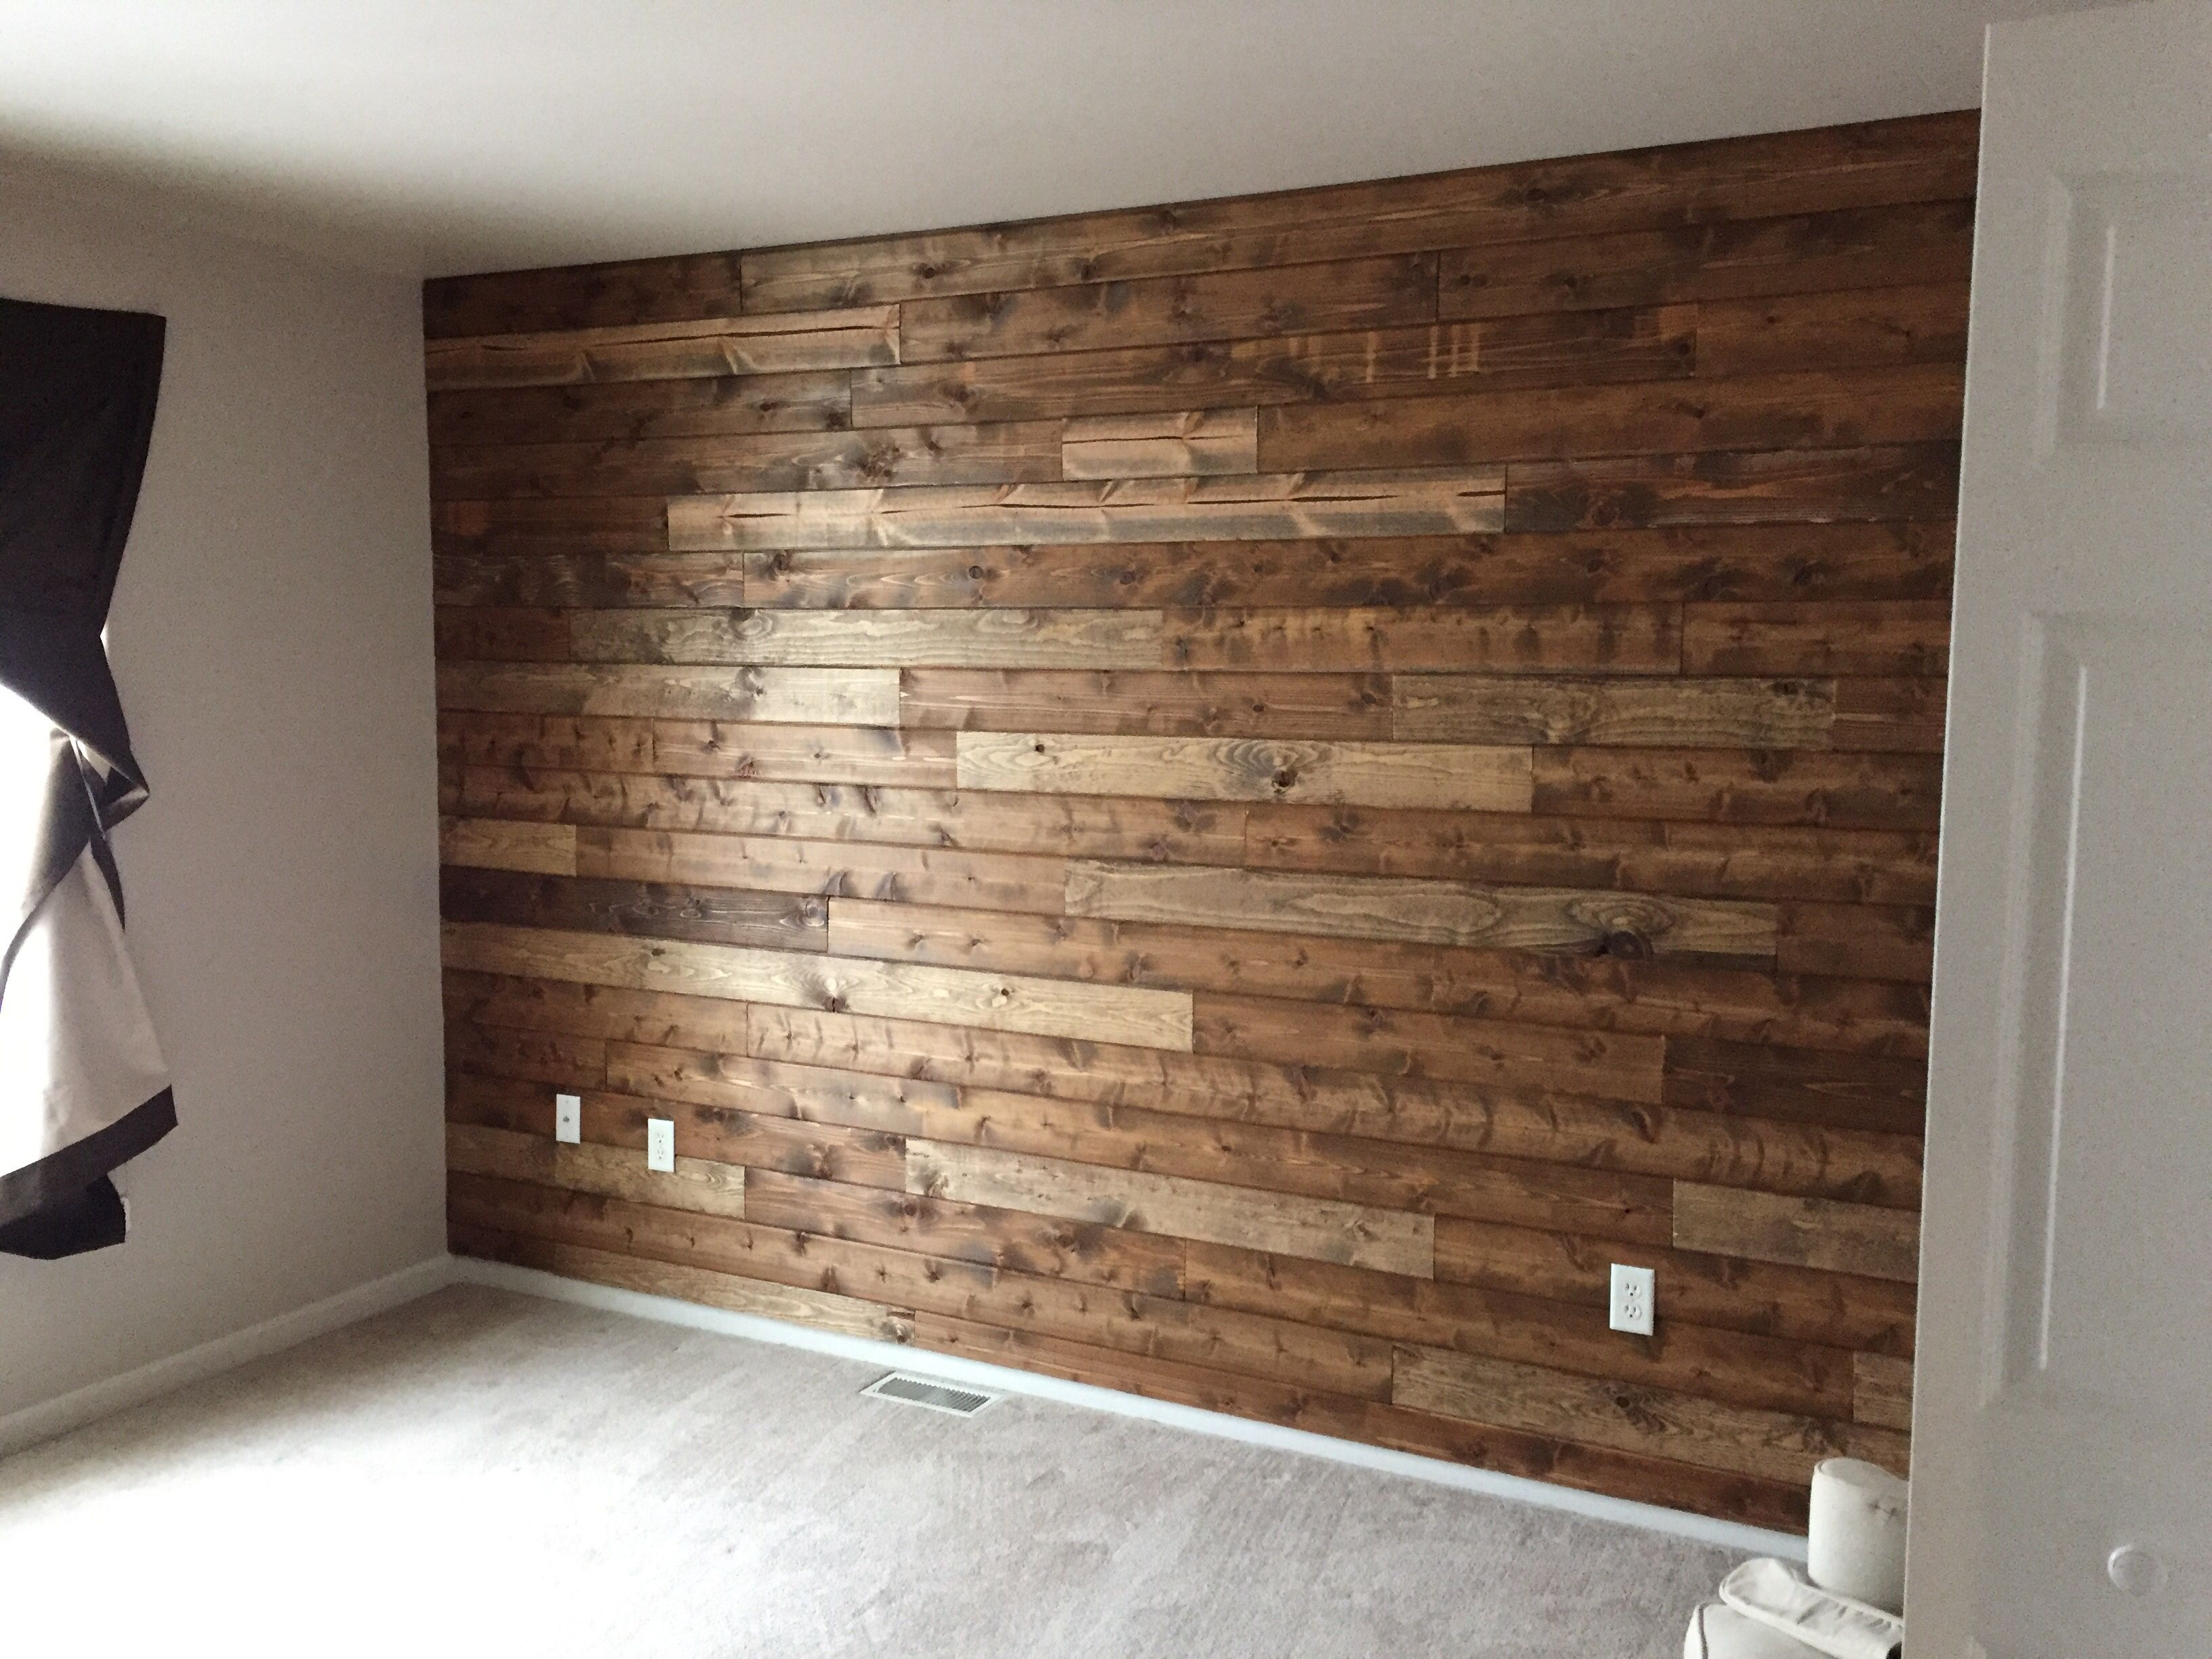 30 Inspiring Accent Wall Ideas To Change An Area Flooring On